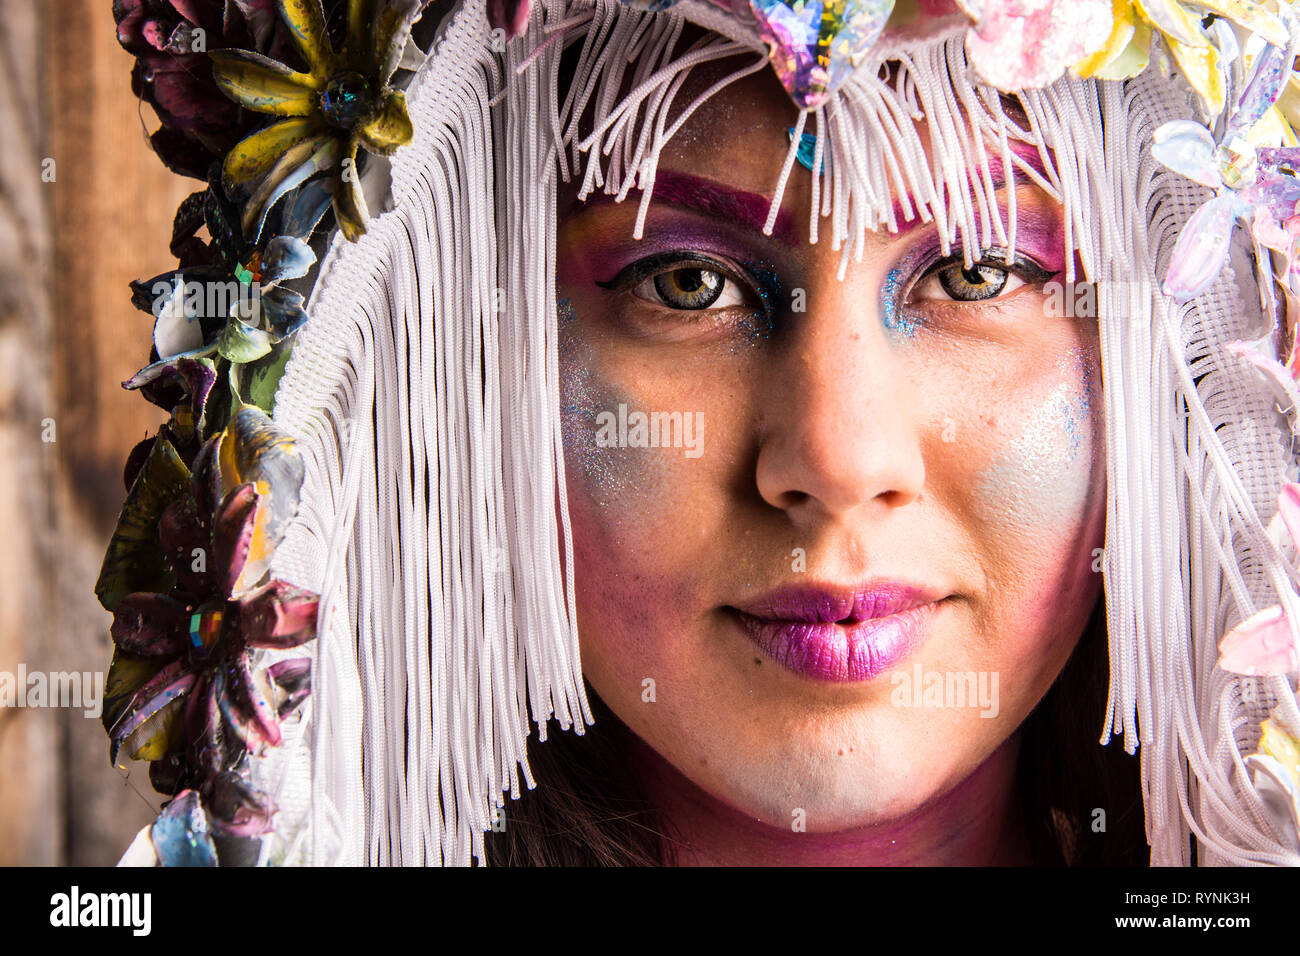 A 25 year old model weating a hat and face paint. - Stock Image